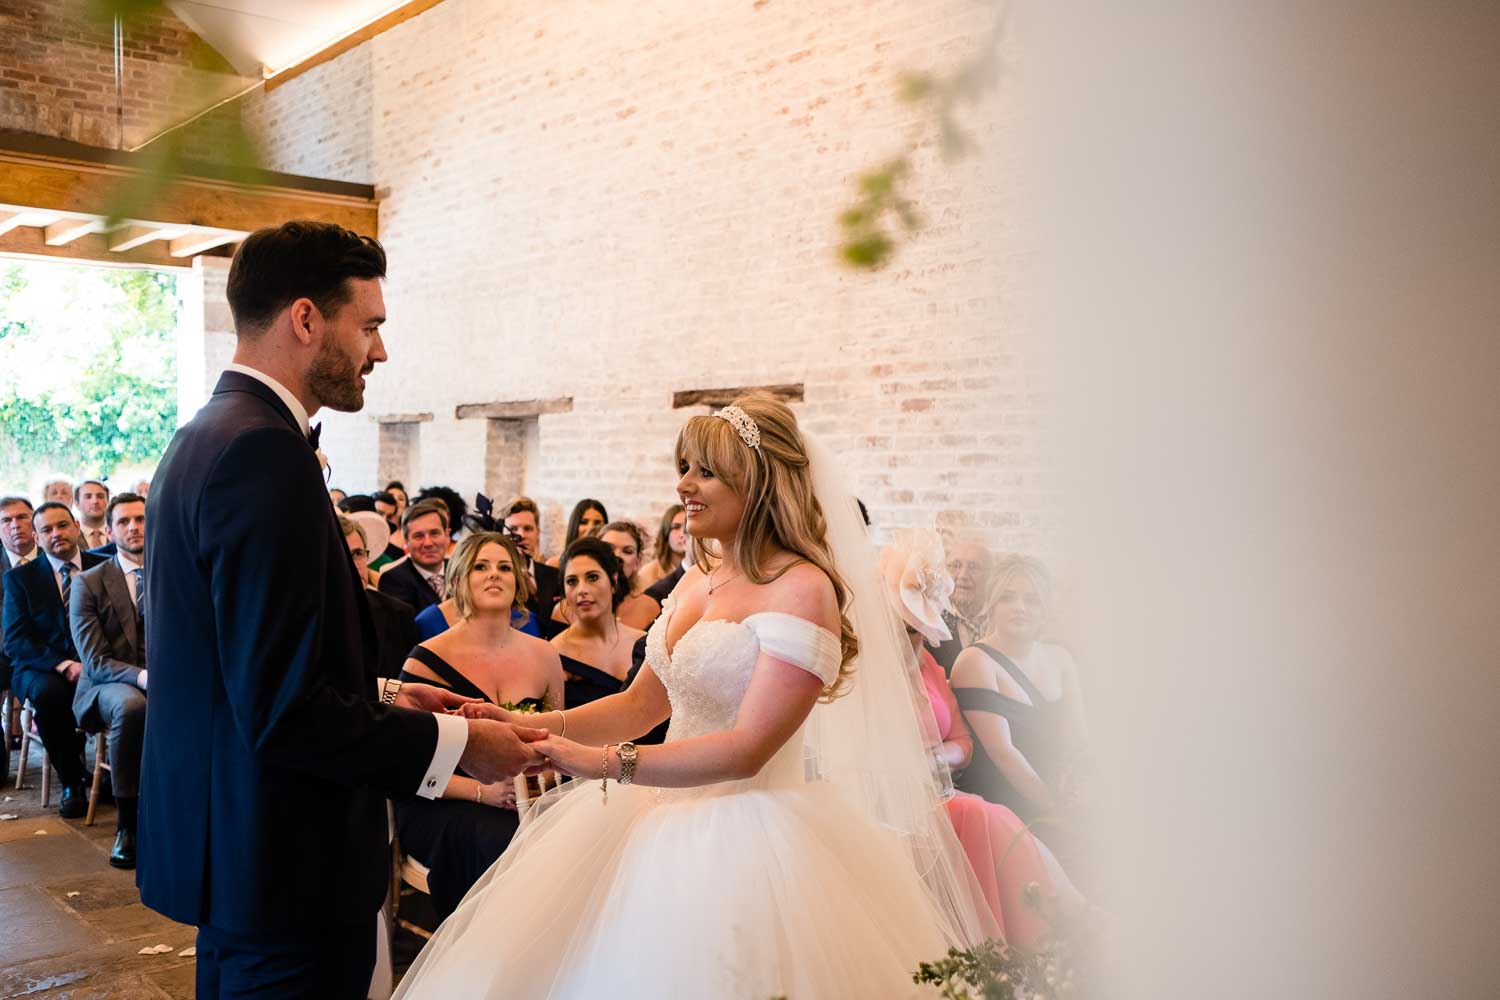 couple looking at each other during wedding ceremony with celebrant